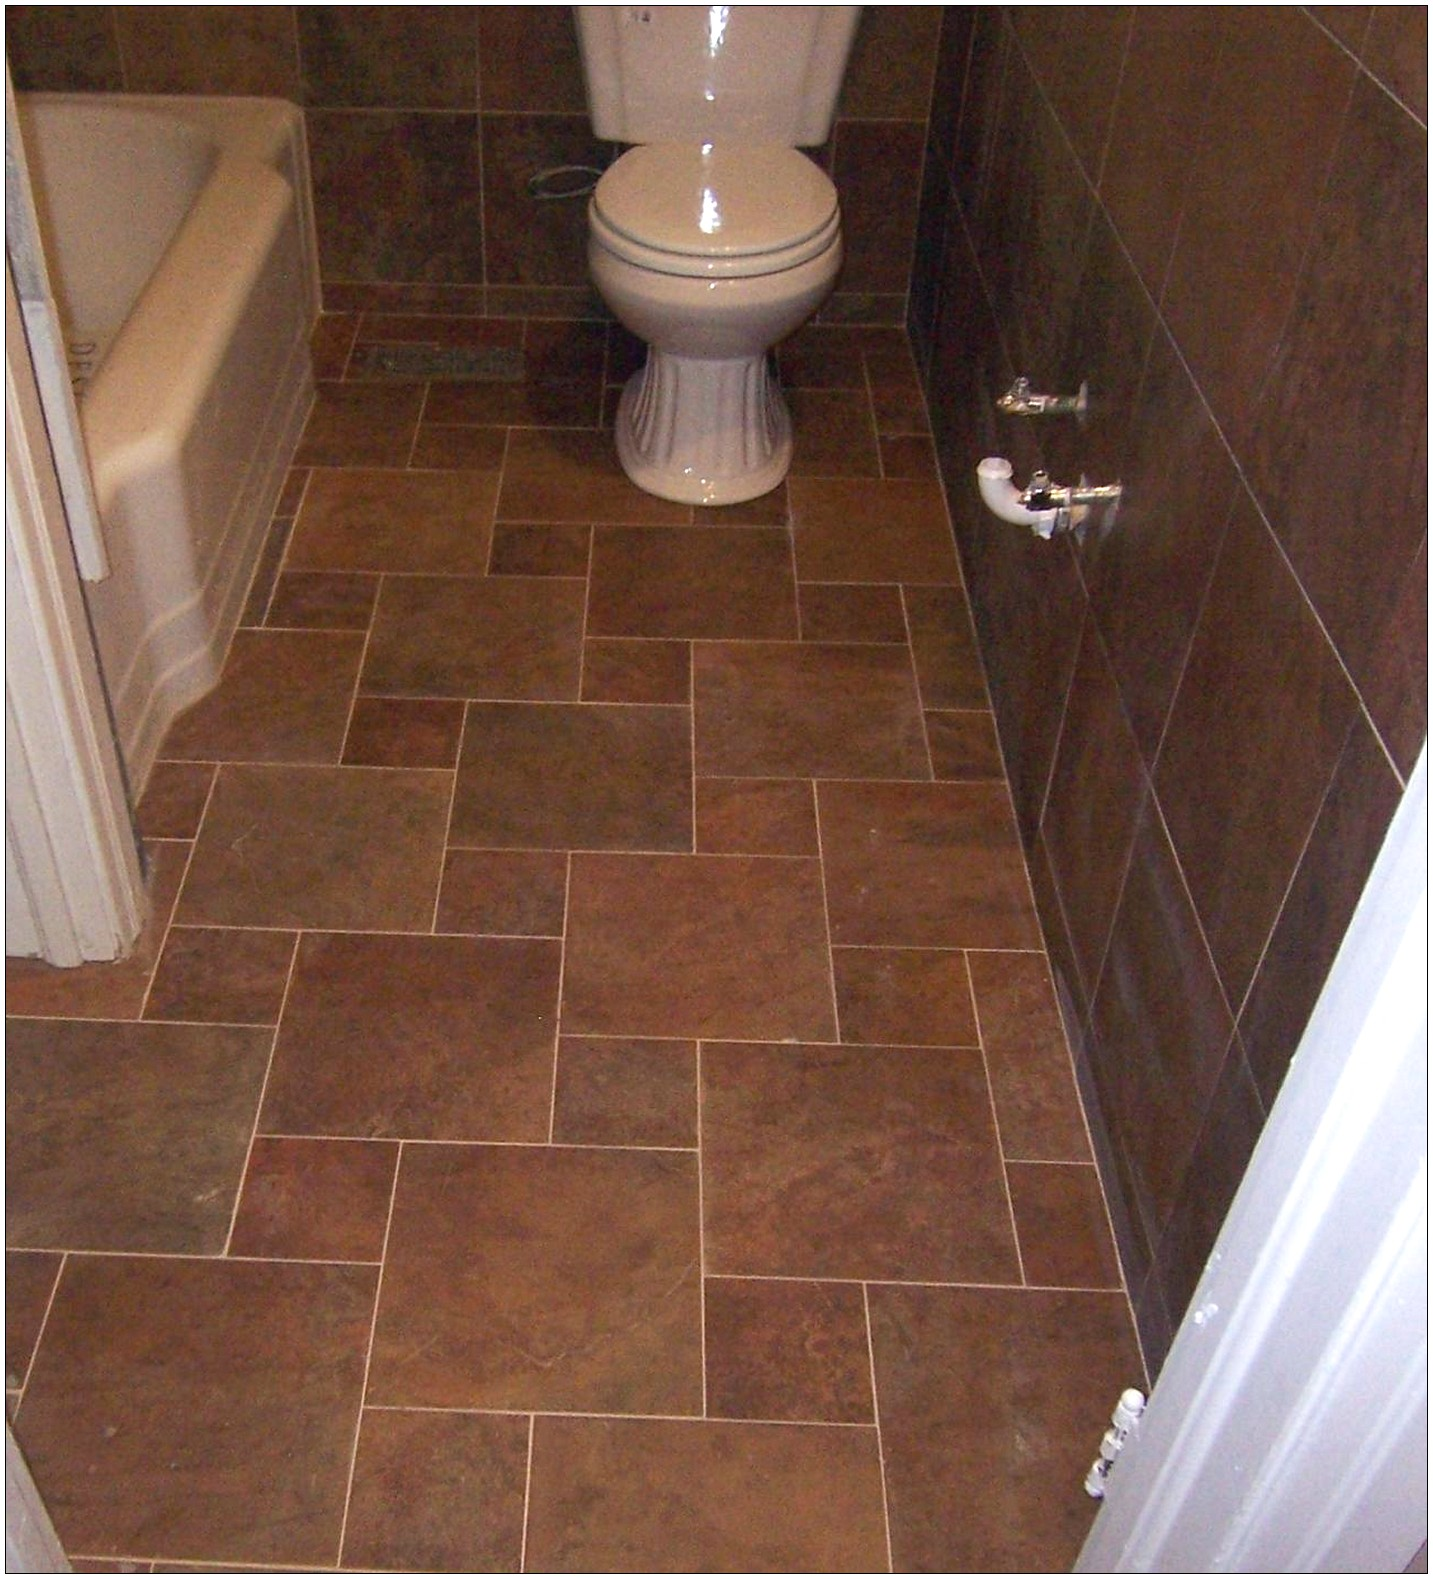 Floor Tiles Design For Small House 30 Beautiful Ideas And Pictures Decorative Bathroom Tile